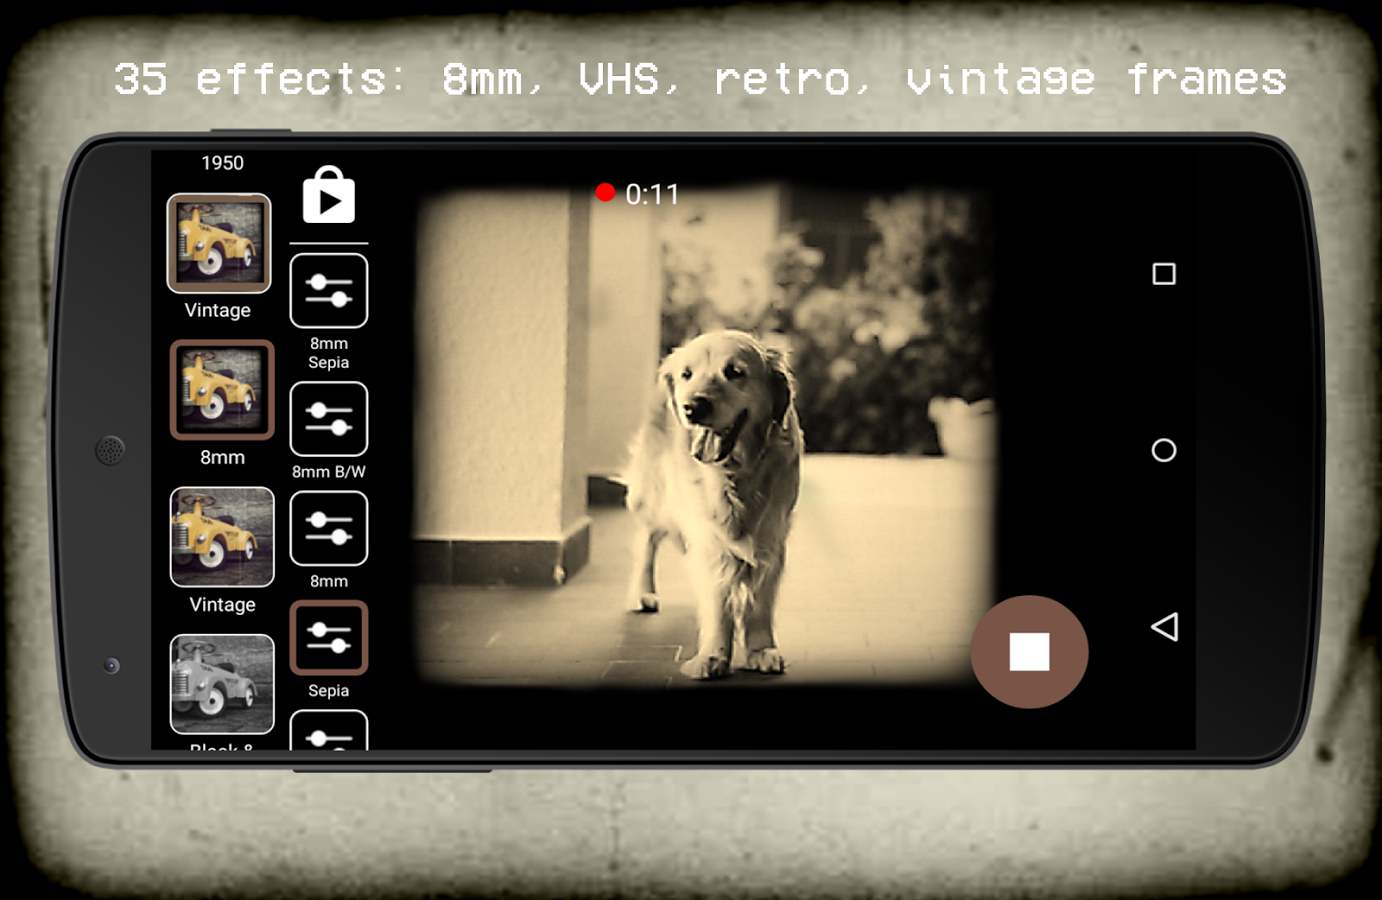 Camera Vintage Android : Here s how to shoot mm movies on your android or iphone u techwafer